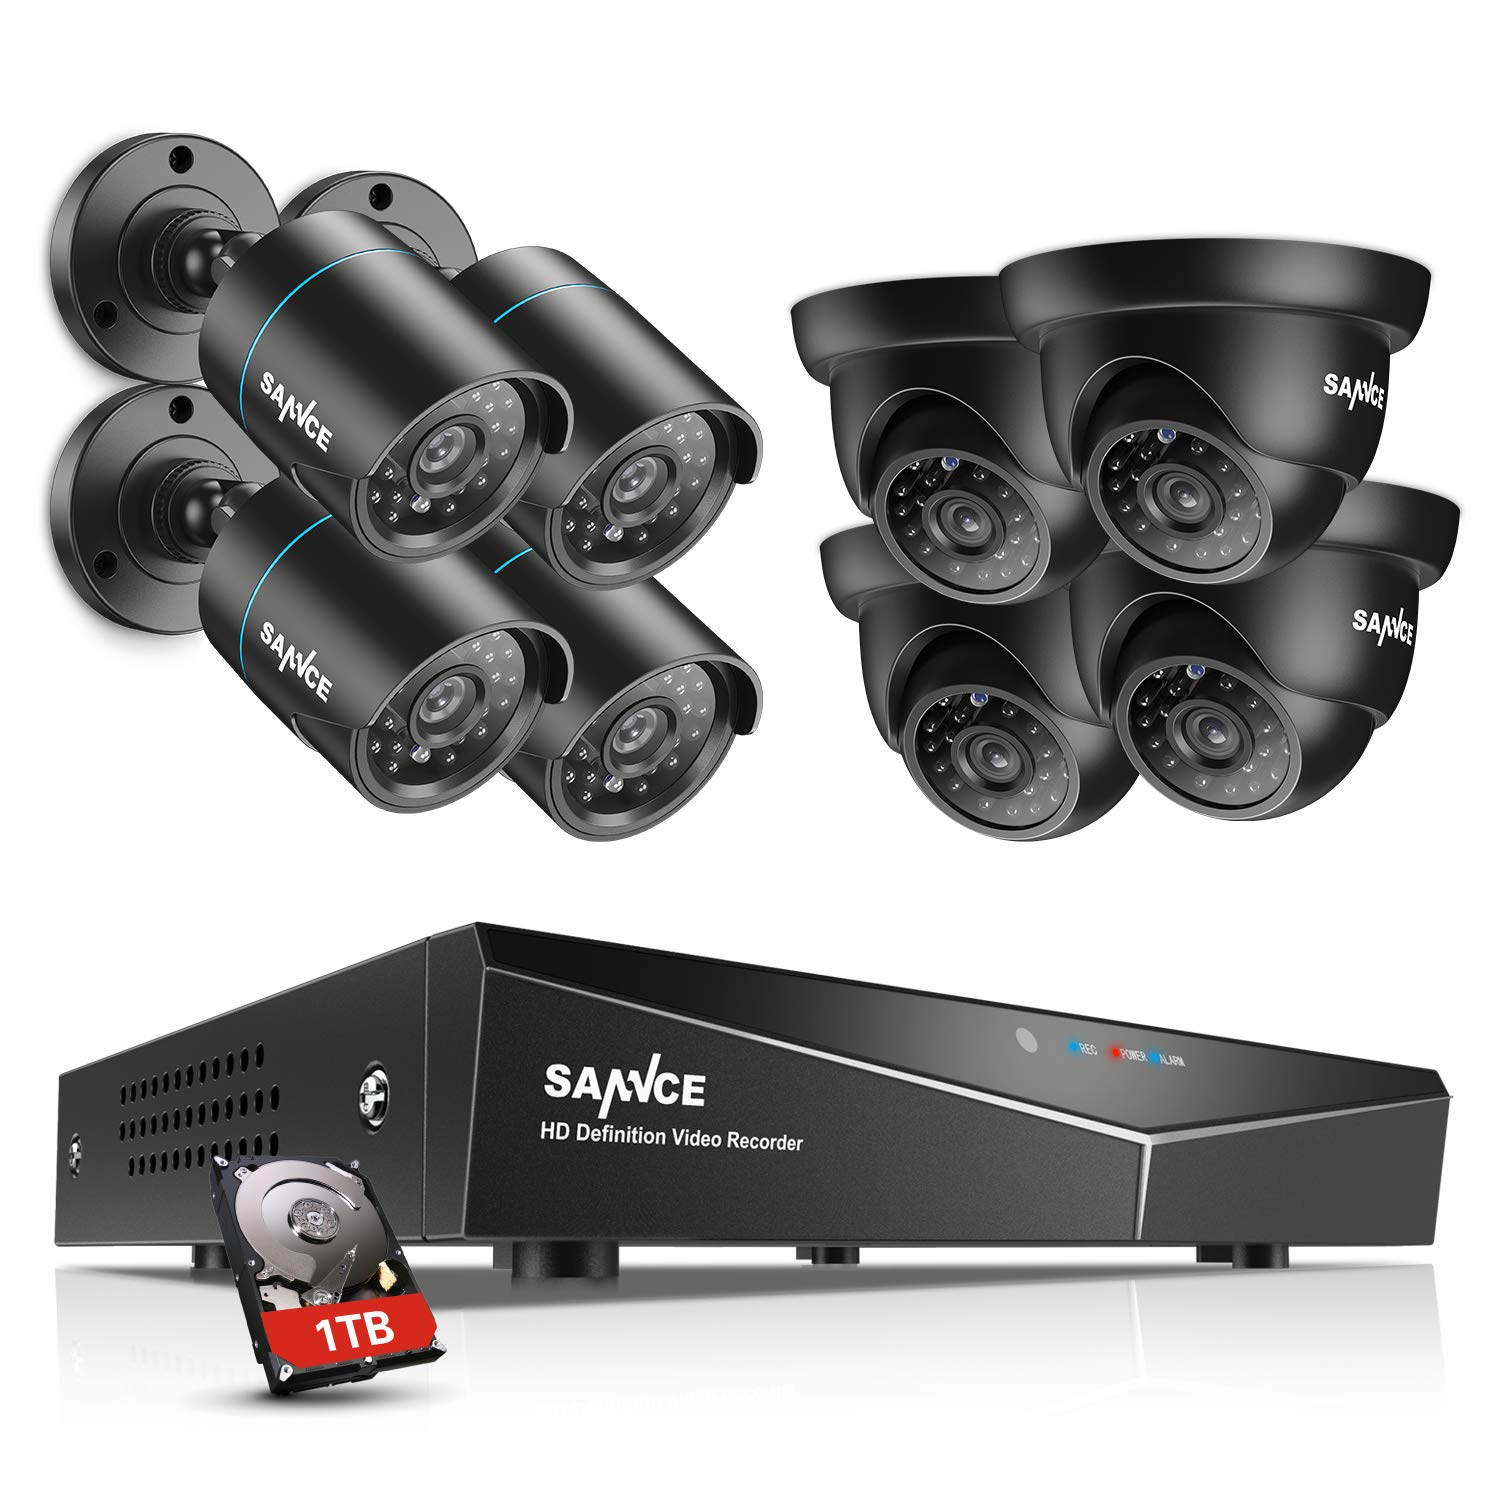 SANNCE 8CH 720P 5-in-1 DVR Video Surveillance System with 1TB HDD Pre-Installed and (8) Outdoor IP66 Weatherproof Cameras with IR Night Vision, Email Alarm, Remote Access by SANNCE